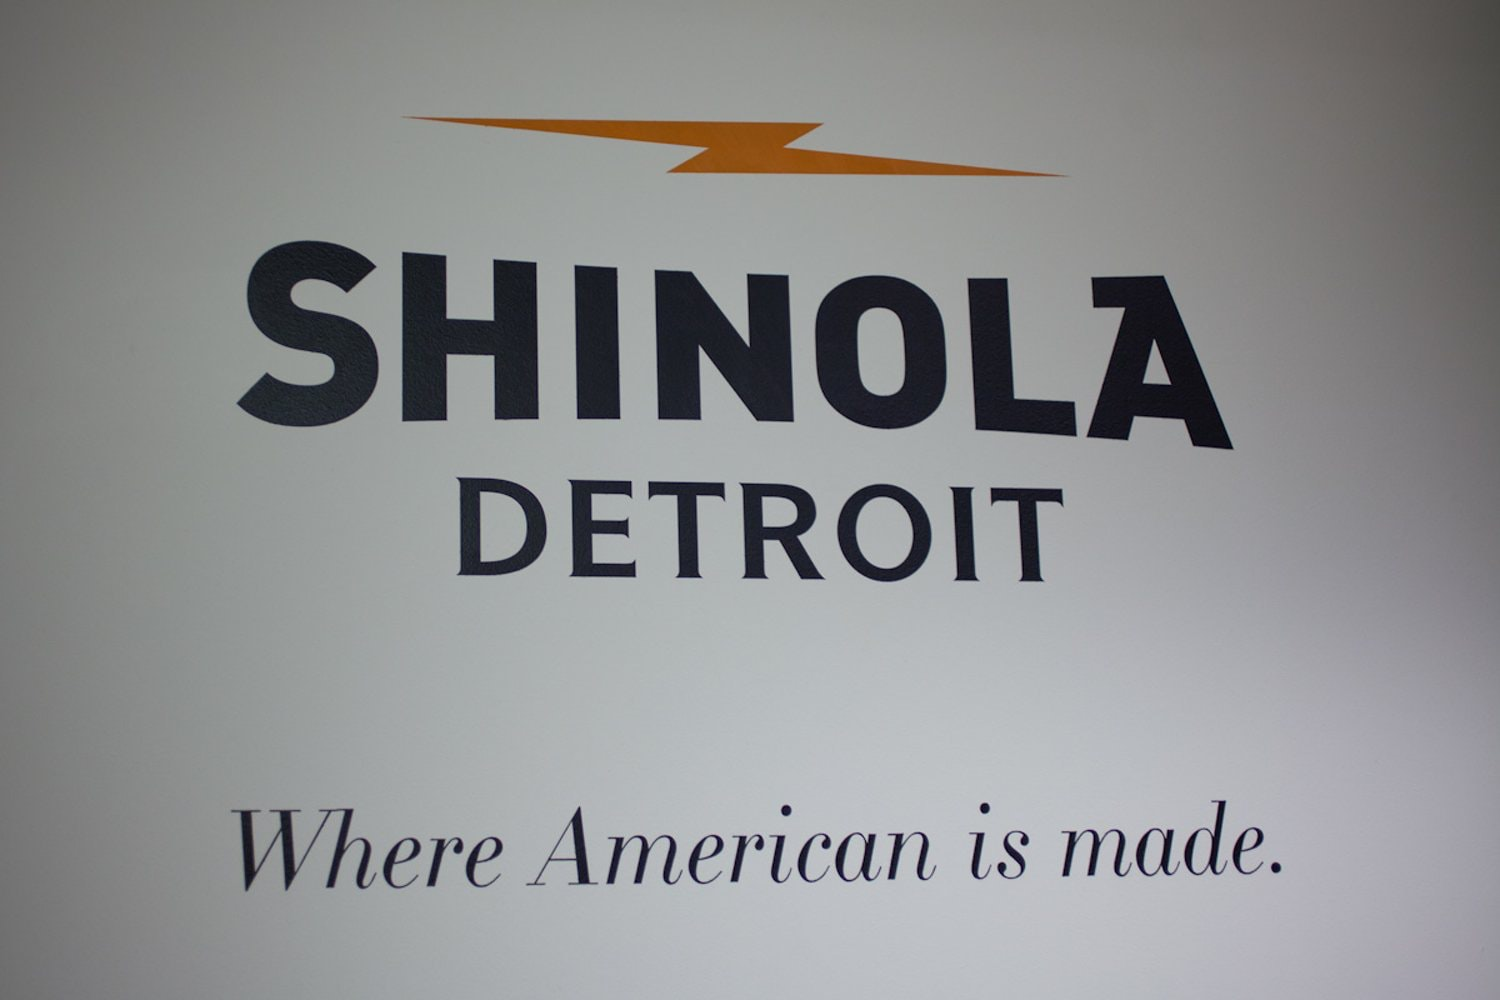 An Open Letter From Shinola Founder Tom Kartsotis In Response To The FTC's Most Recent Action An Open Letter From Shinola Founder Tom Kartsotis In Response To The FTC's Most Recent Action Shinola 1